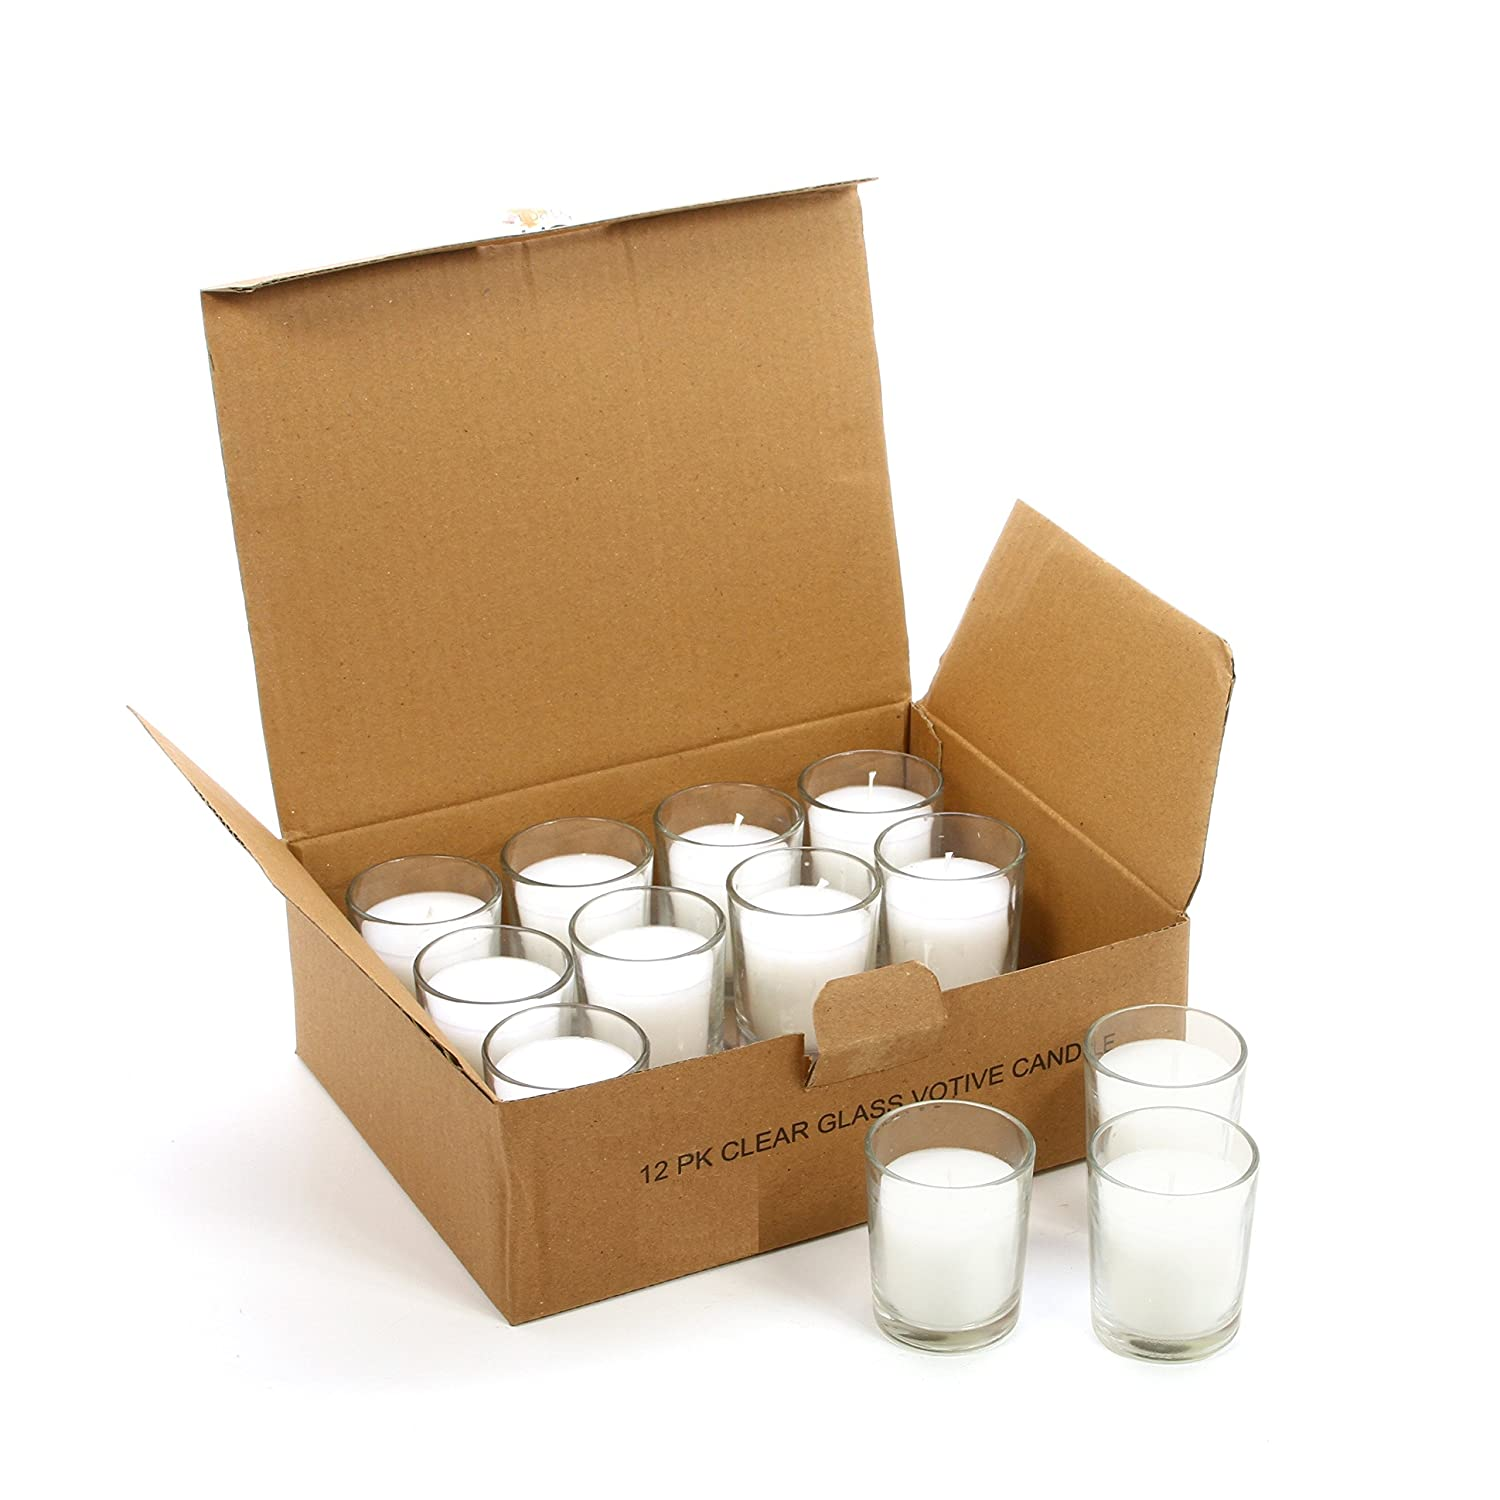 Hosley Set of 12 Unscented Clear Glass White Wax Filled Votive Candles, 12 Hour Burn Time. Glass Votive & Hand Poured Candle Included, Ideal Gift or Use for Weddings, Aromatherapy, and Party Favors O3 HG Global